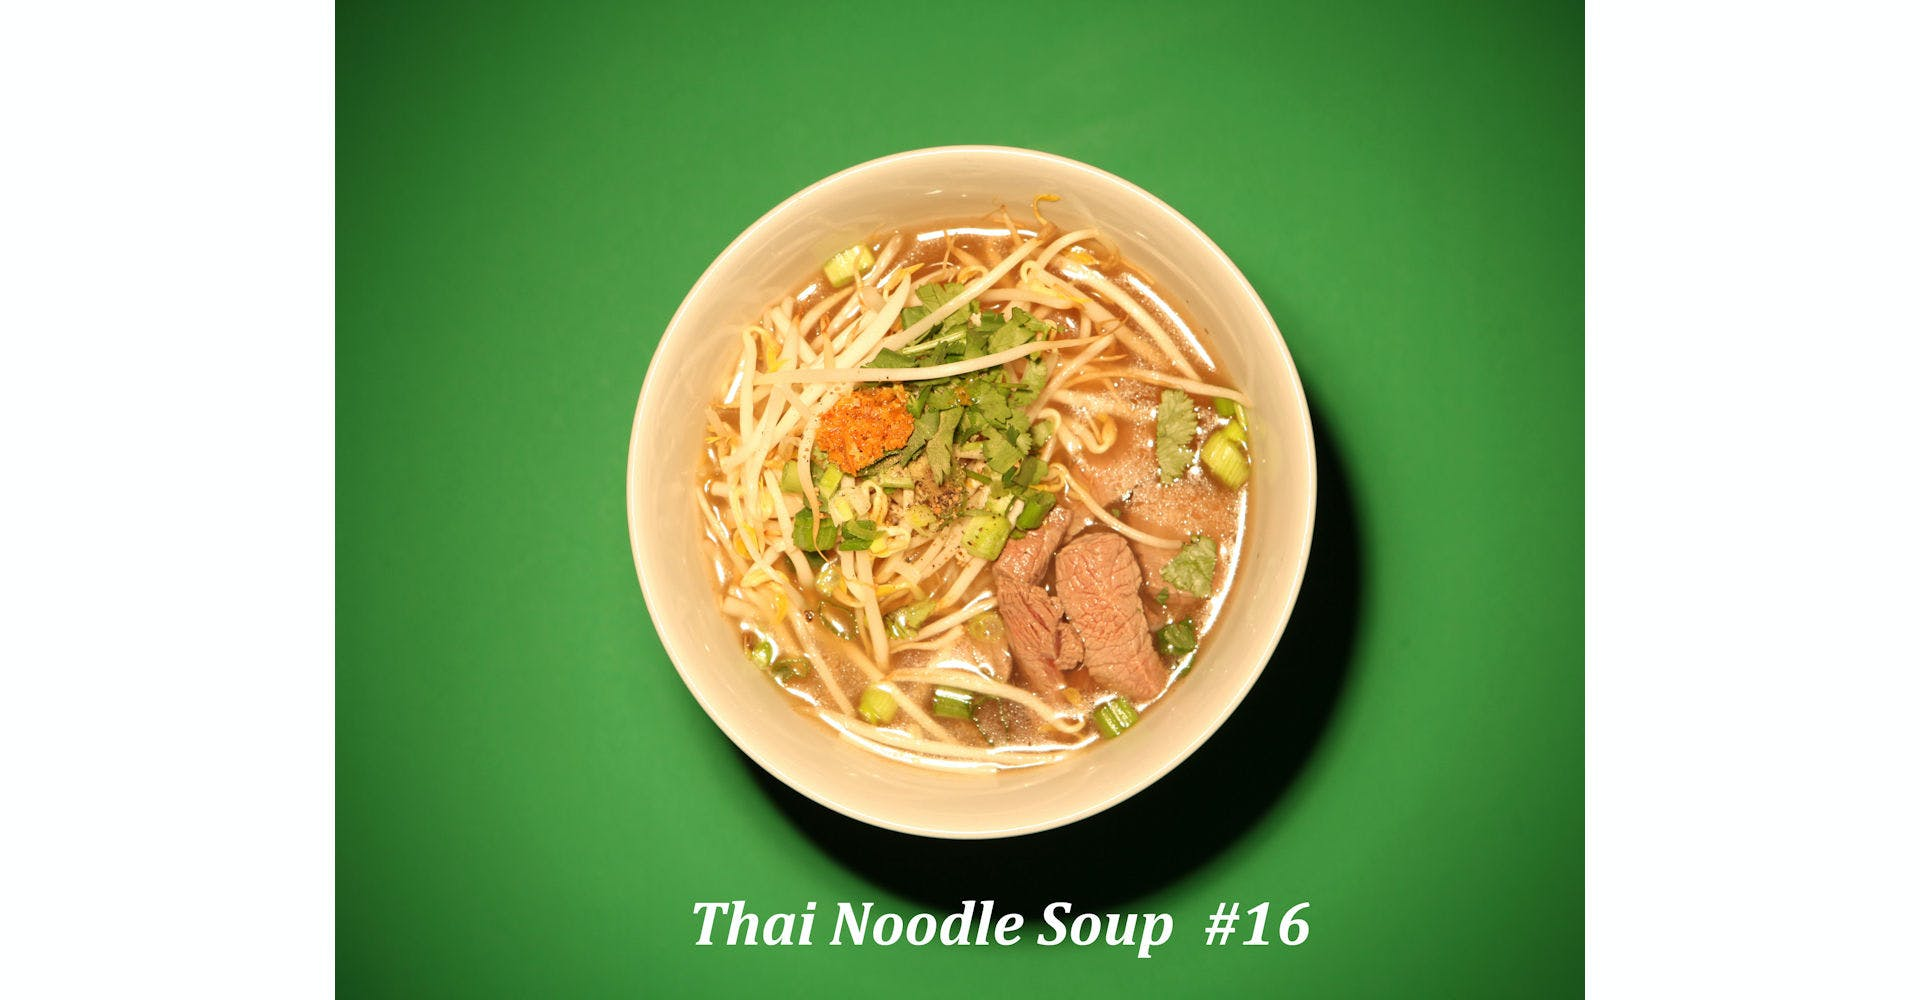 16. Thai Noodle Soup from Narin's Thai Kitchen in Green Bay, WI